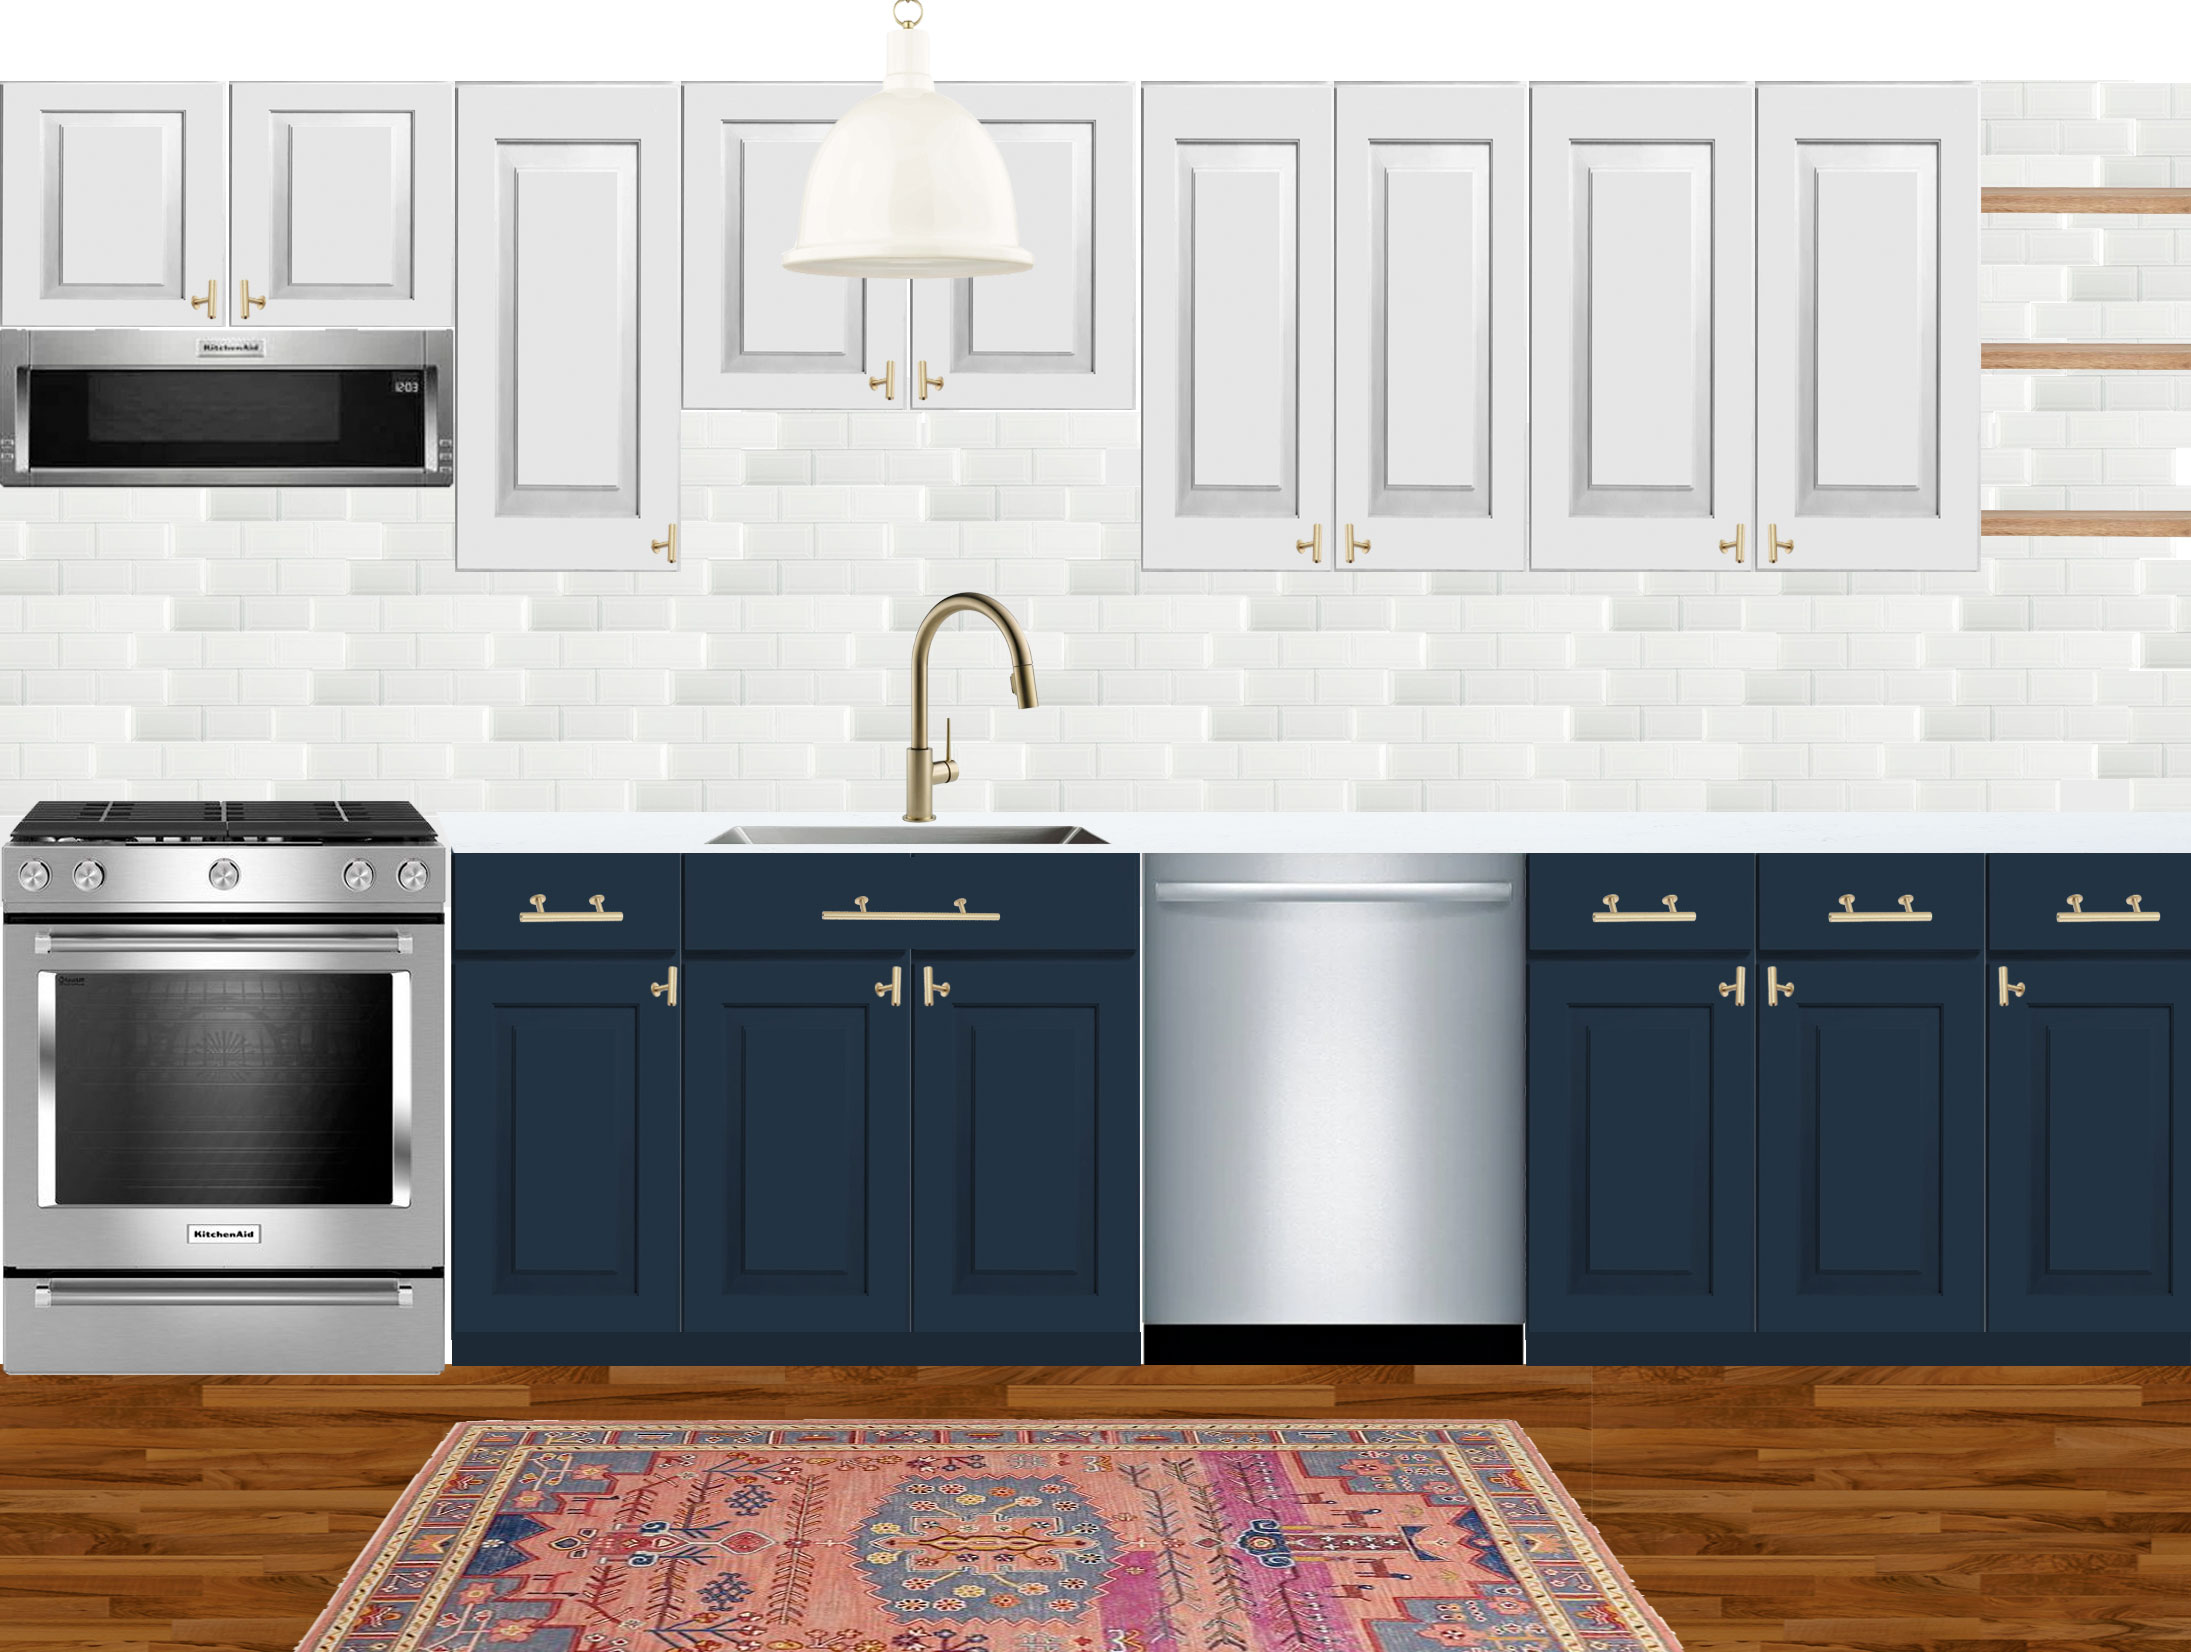 Design board for a small navy and white kitchen with brass hardware and marble-like quartz countertops by Mix & Match Design Company. The vintage rug adds some additional color and pattern to this gorgeous kitchen!